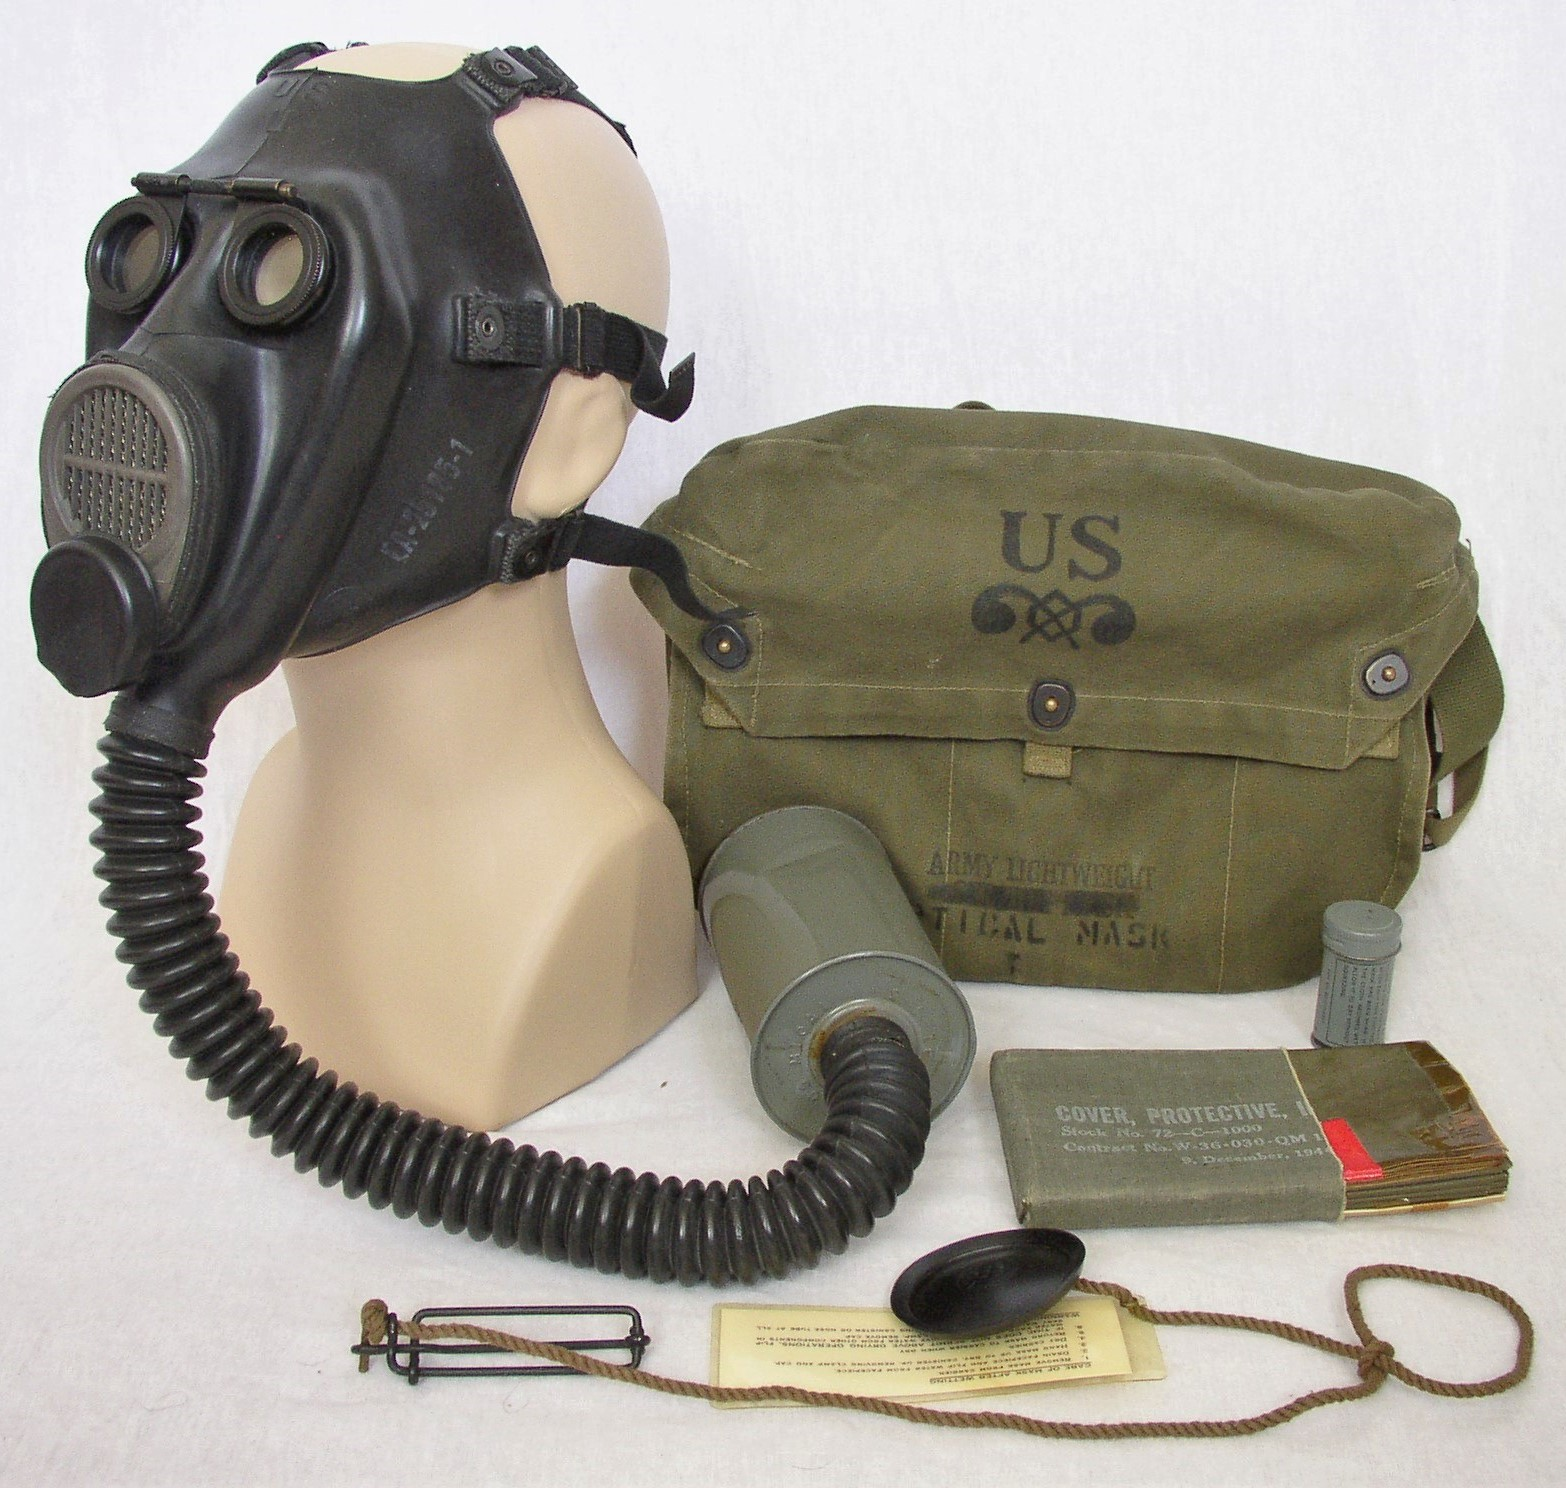 M2-10A1-6 Lightweight Optical Gas Mask